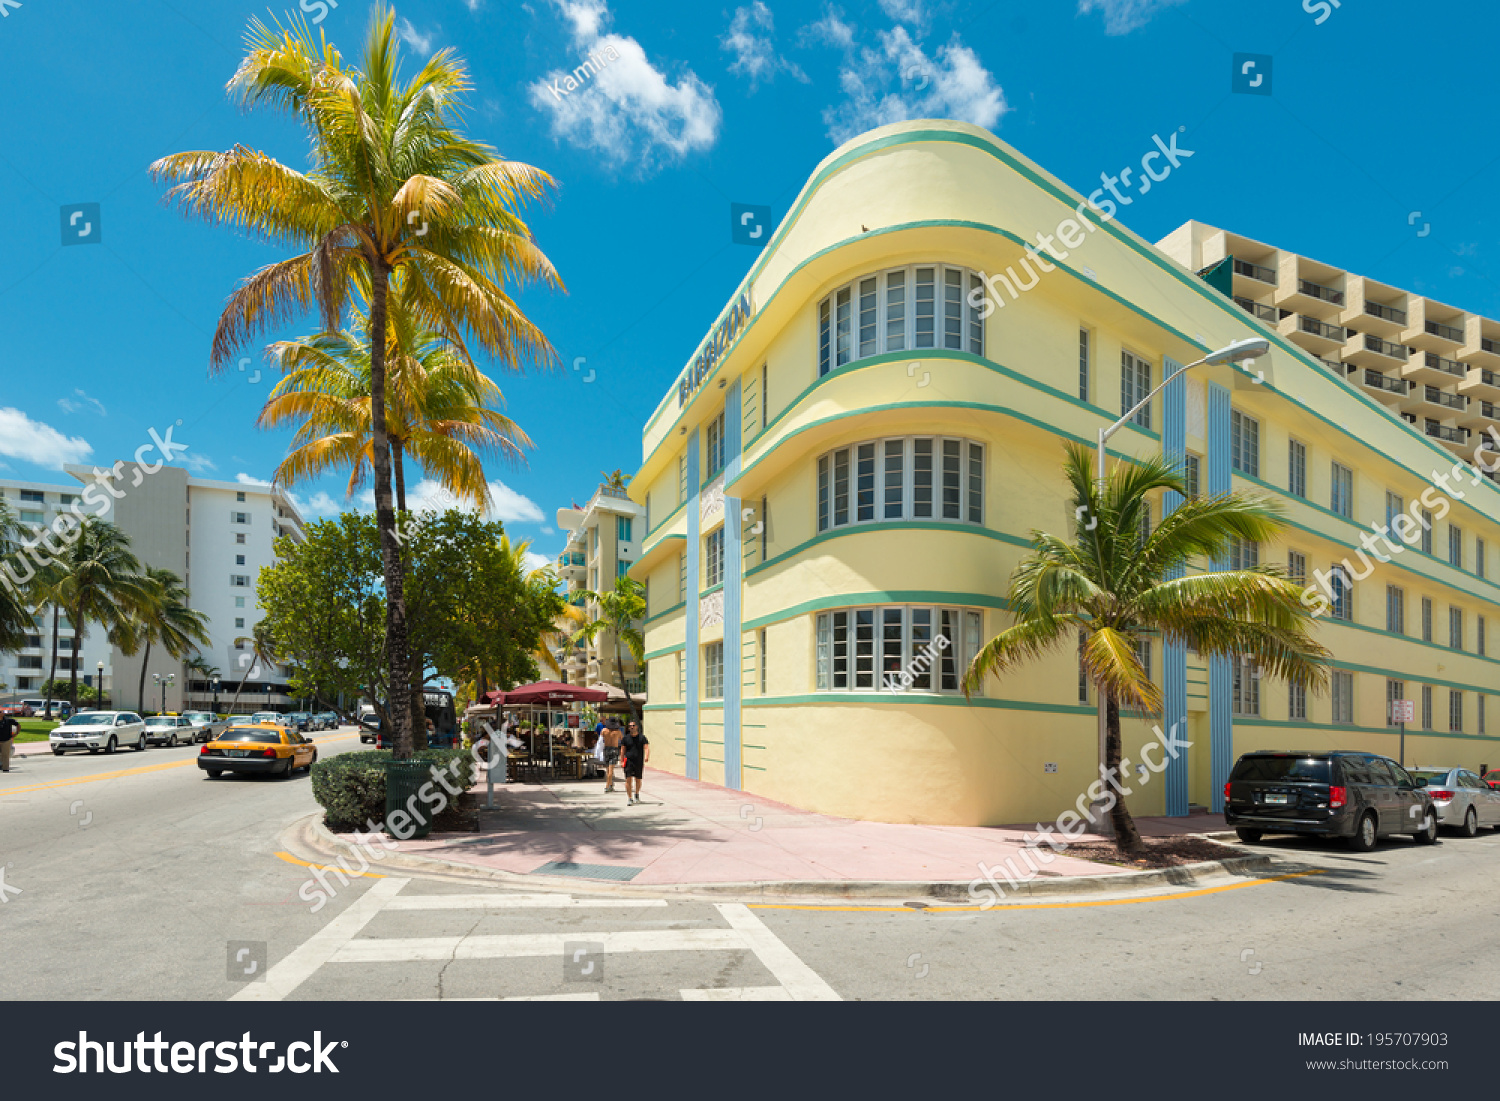 miamiusa may 212014 ocean drive hotels stock photo. Black Bedroom Furniture Sets. Home Design Ideas